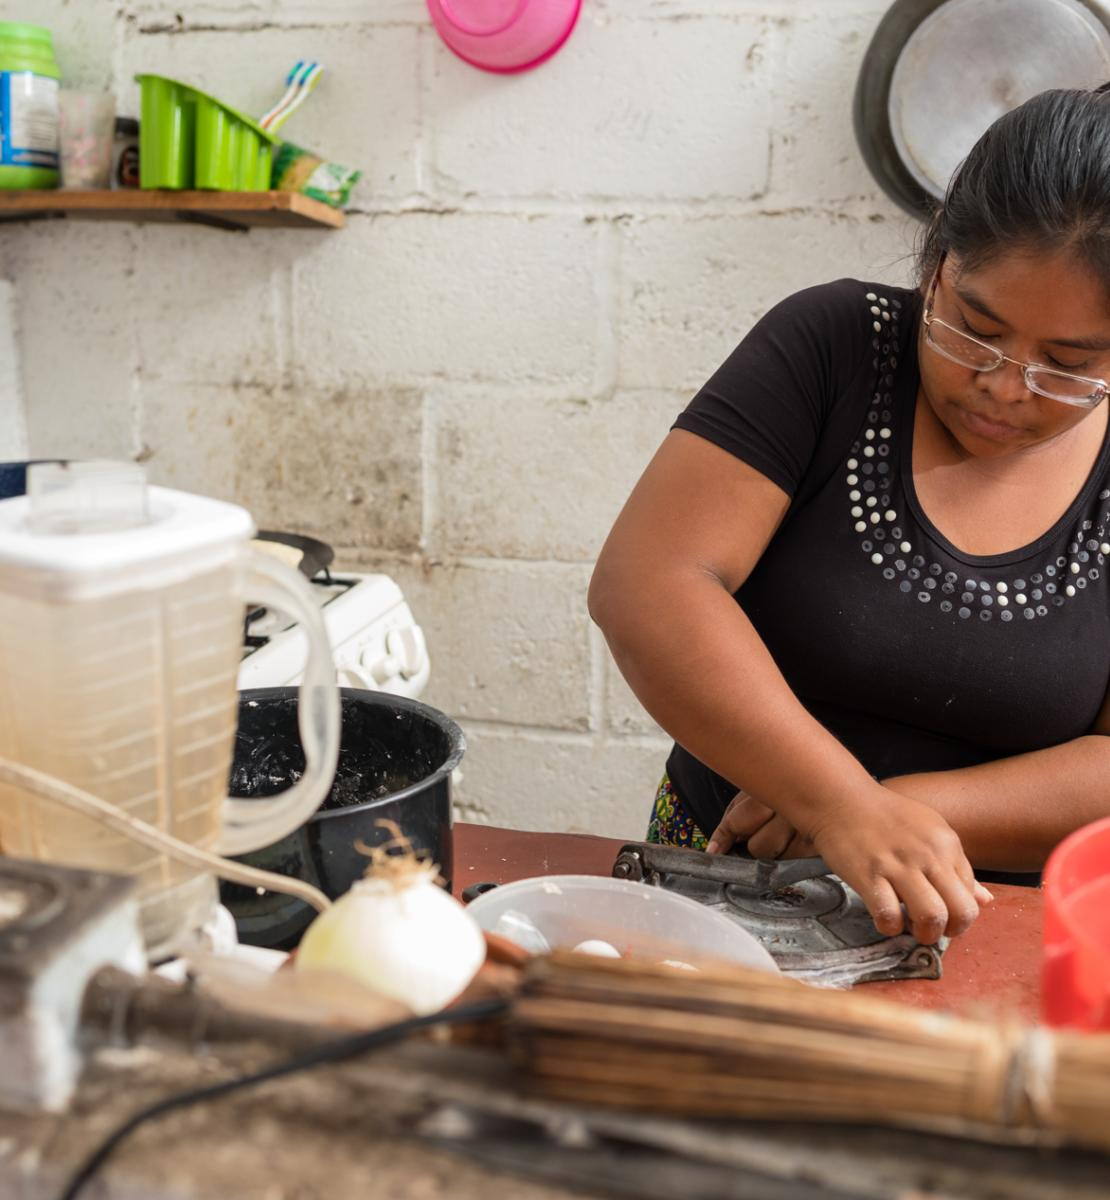 A woman in a black shirt cooks in a kitchen.